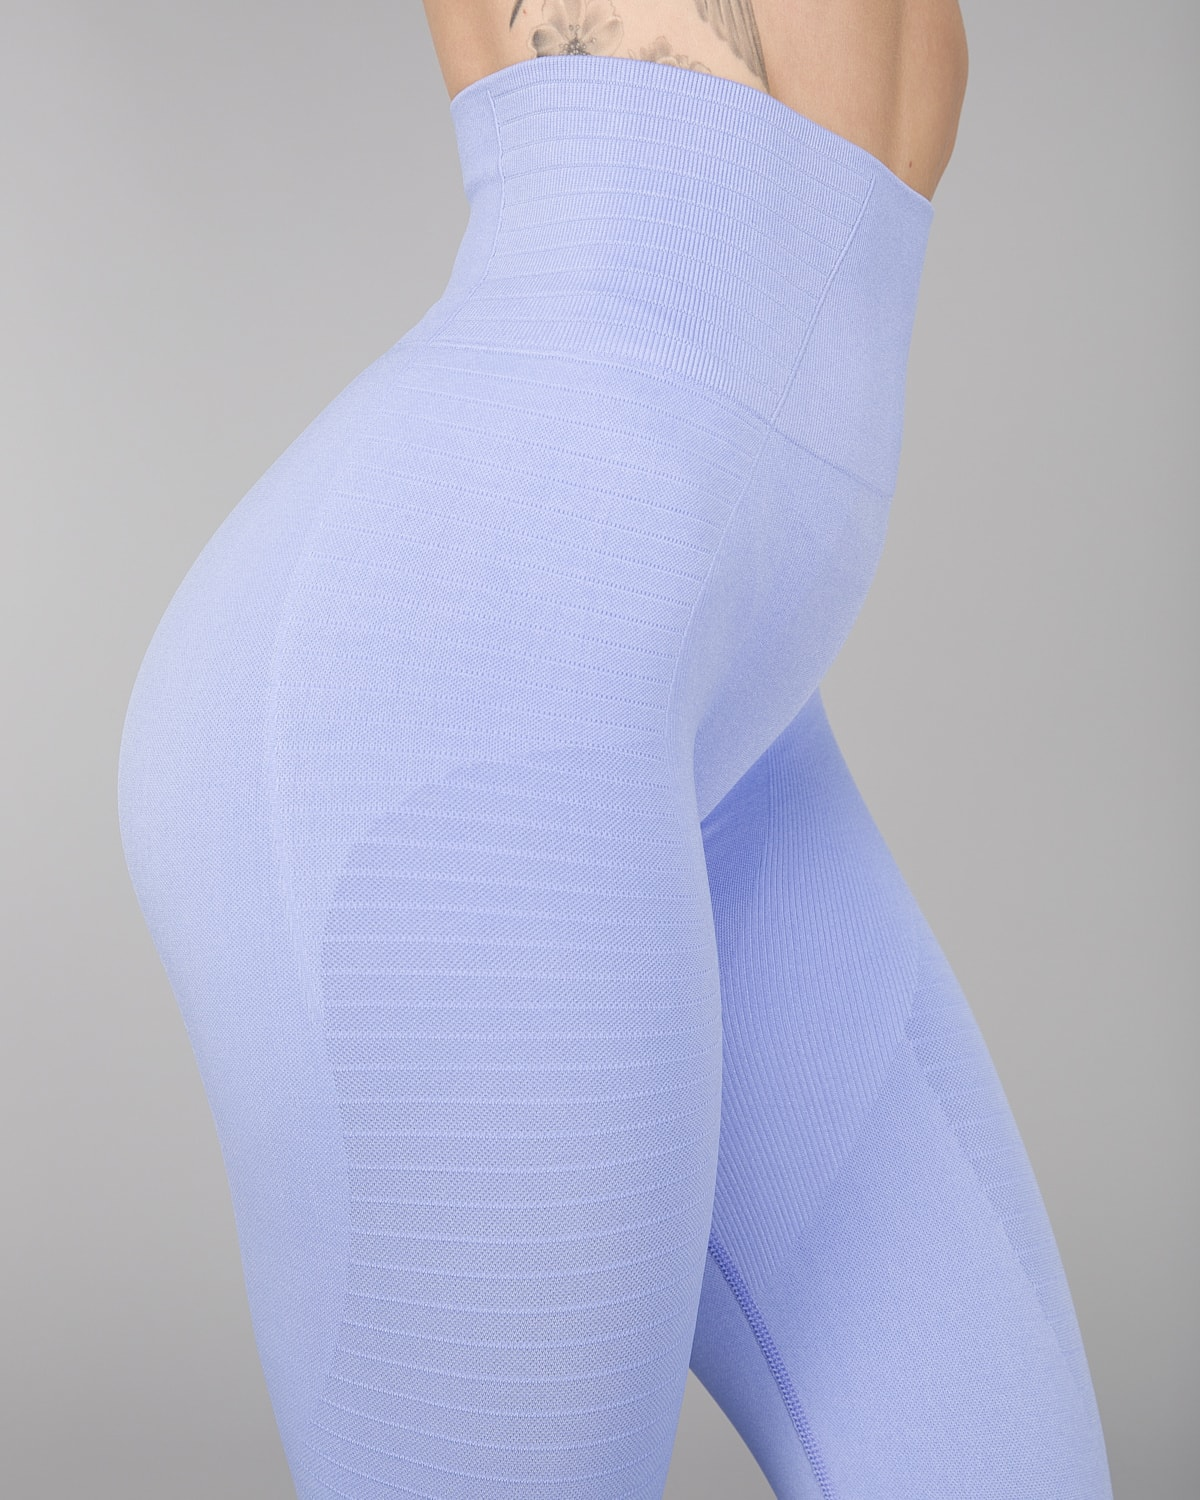 Jerf Gela 2.0 Tights Blue Pastel15